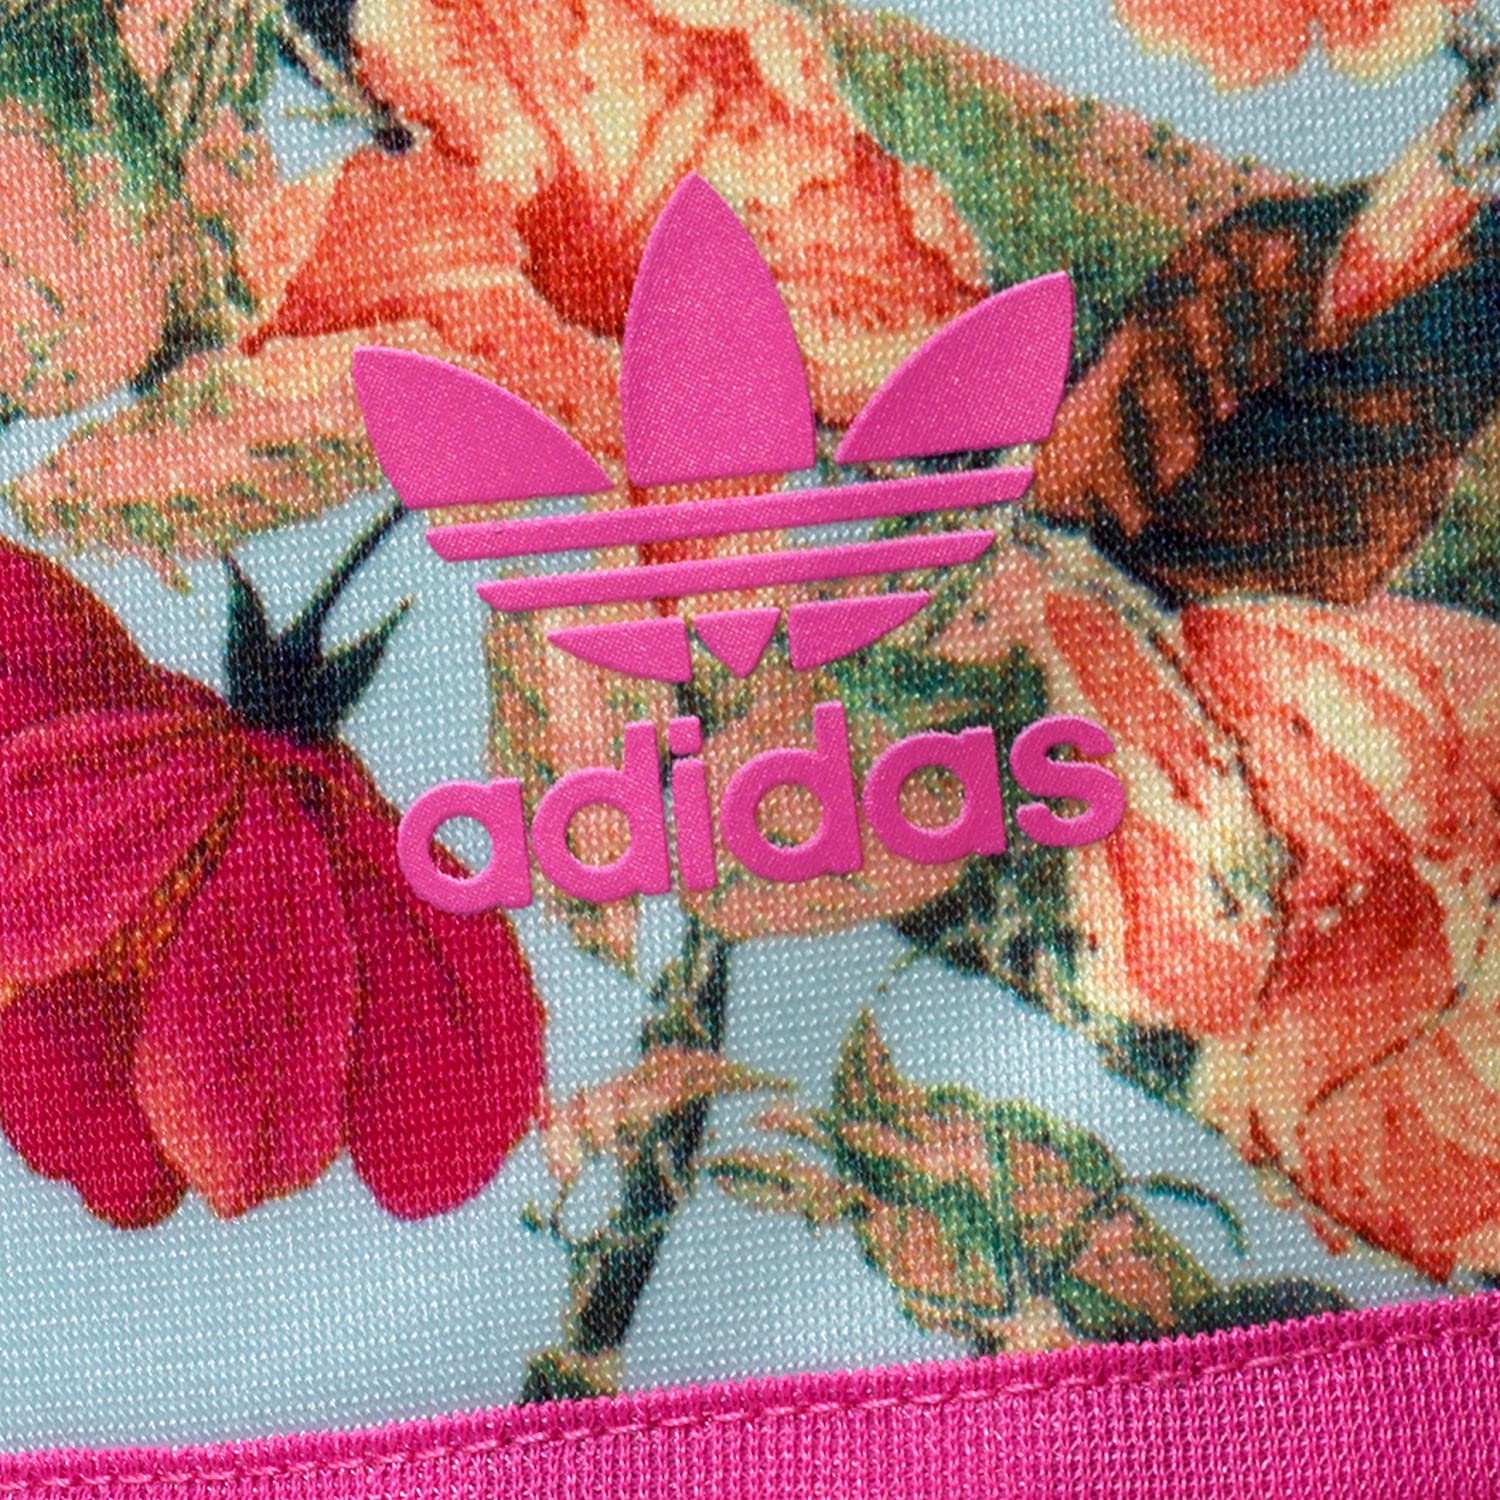 Tradicional plantador observación  Shorts Women adidas Originals Borboflor Shorts: Amazon.co.uk: Clothing